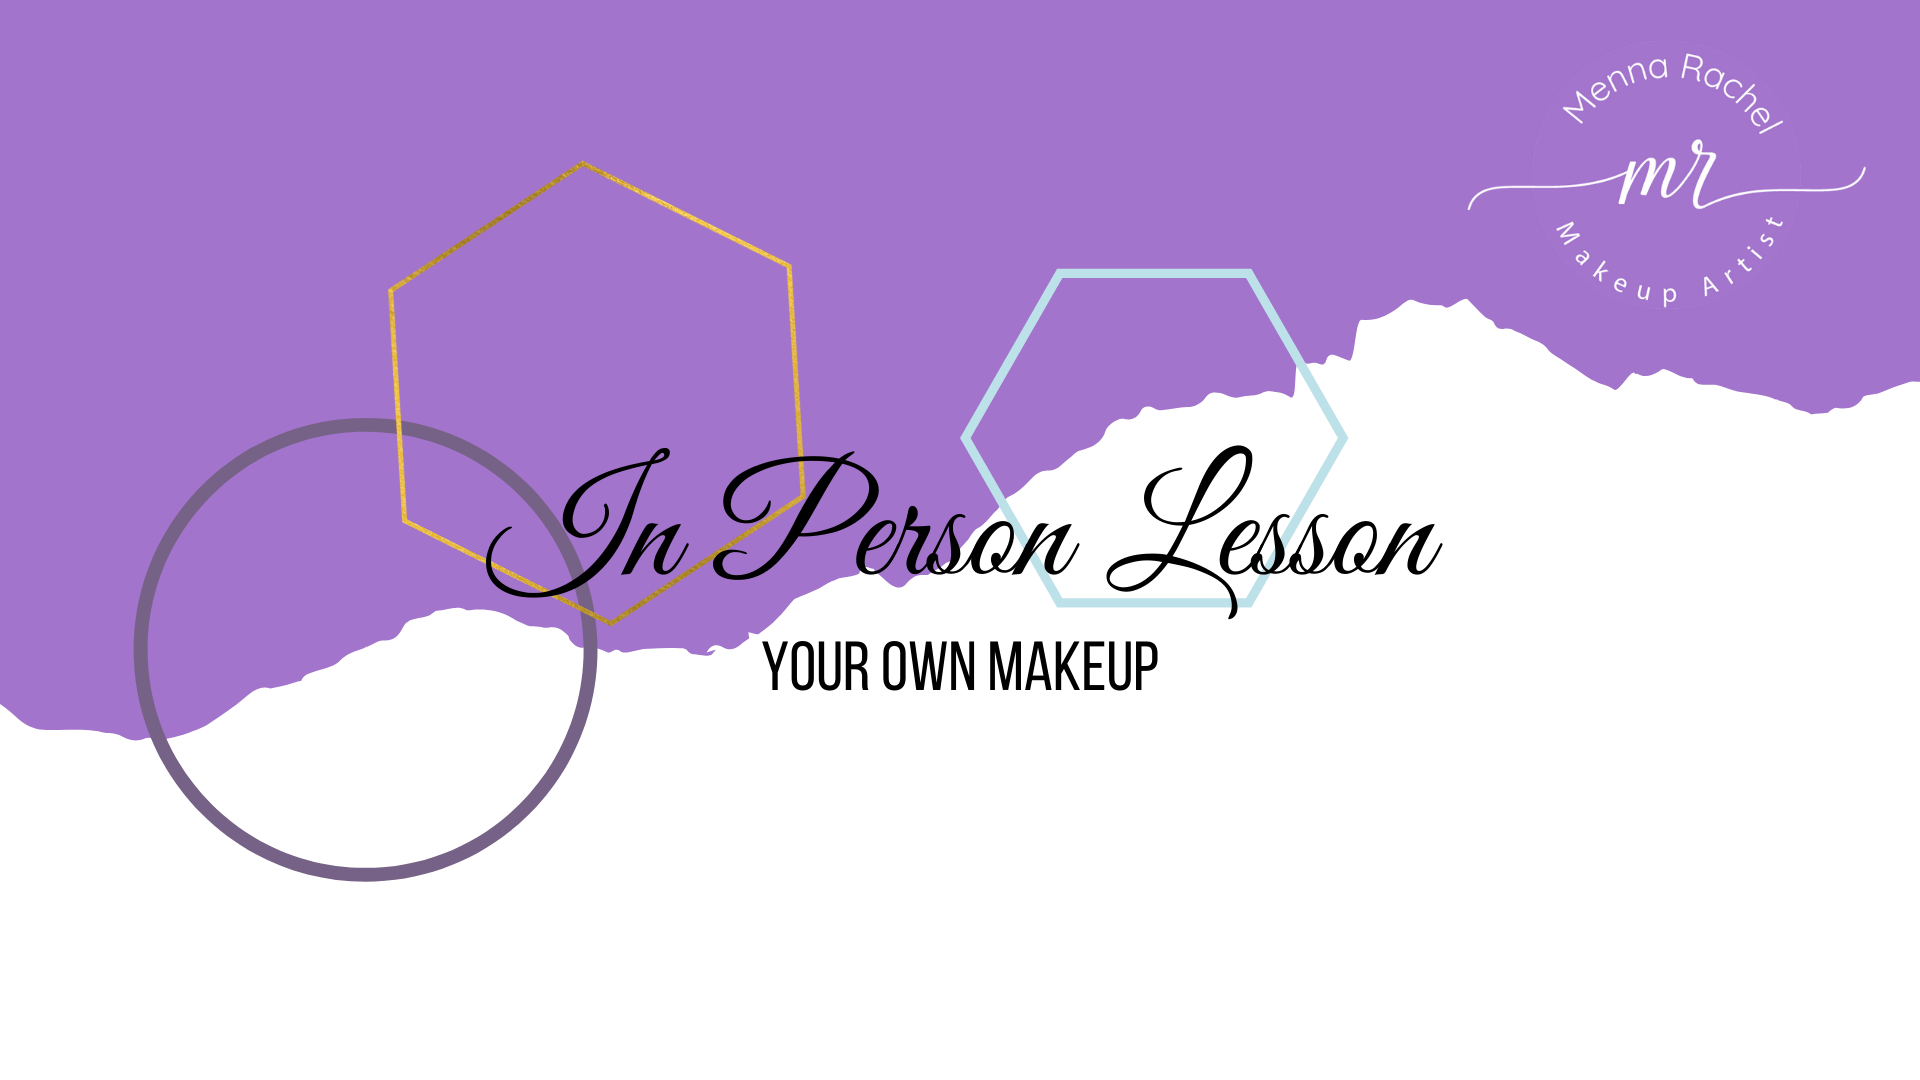 In Person Makeup Lesson - Your Own Makeup Banner